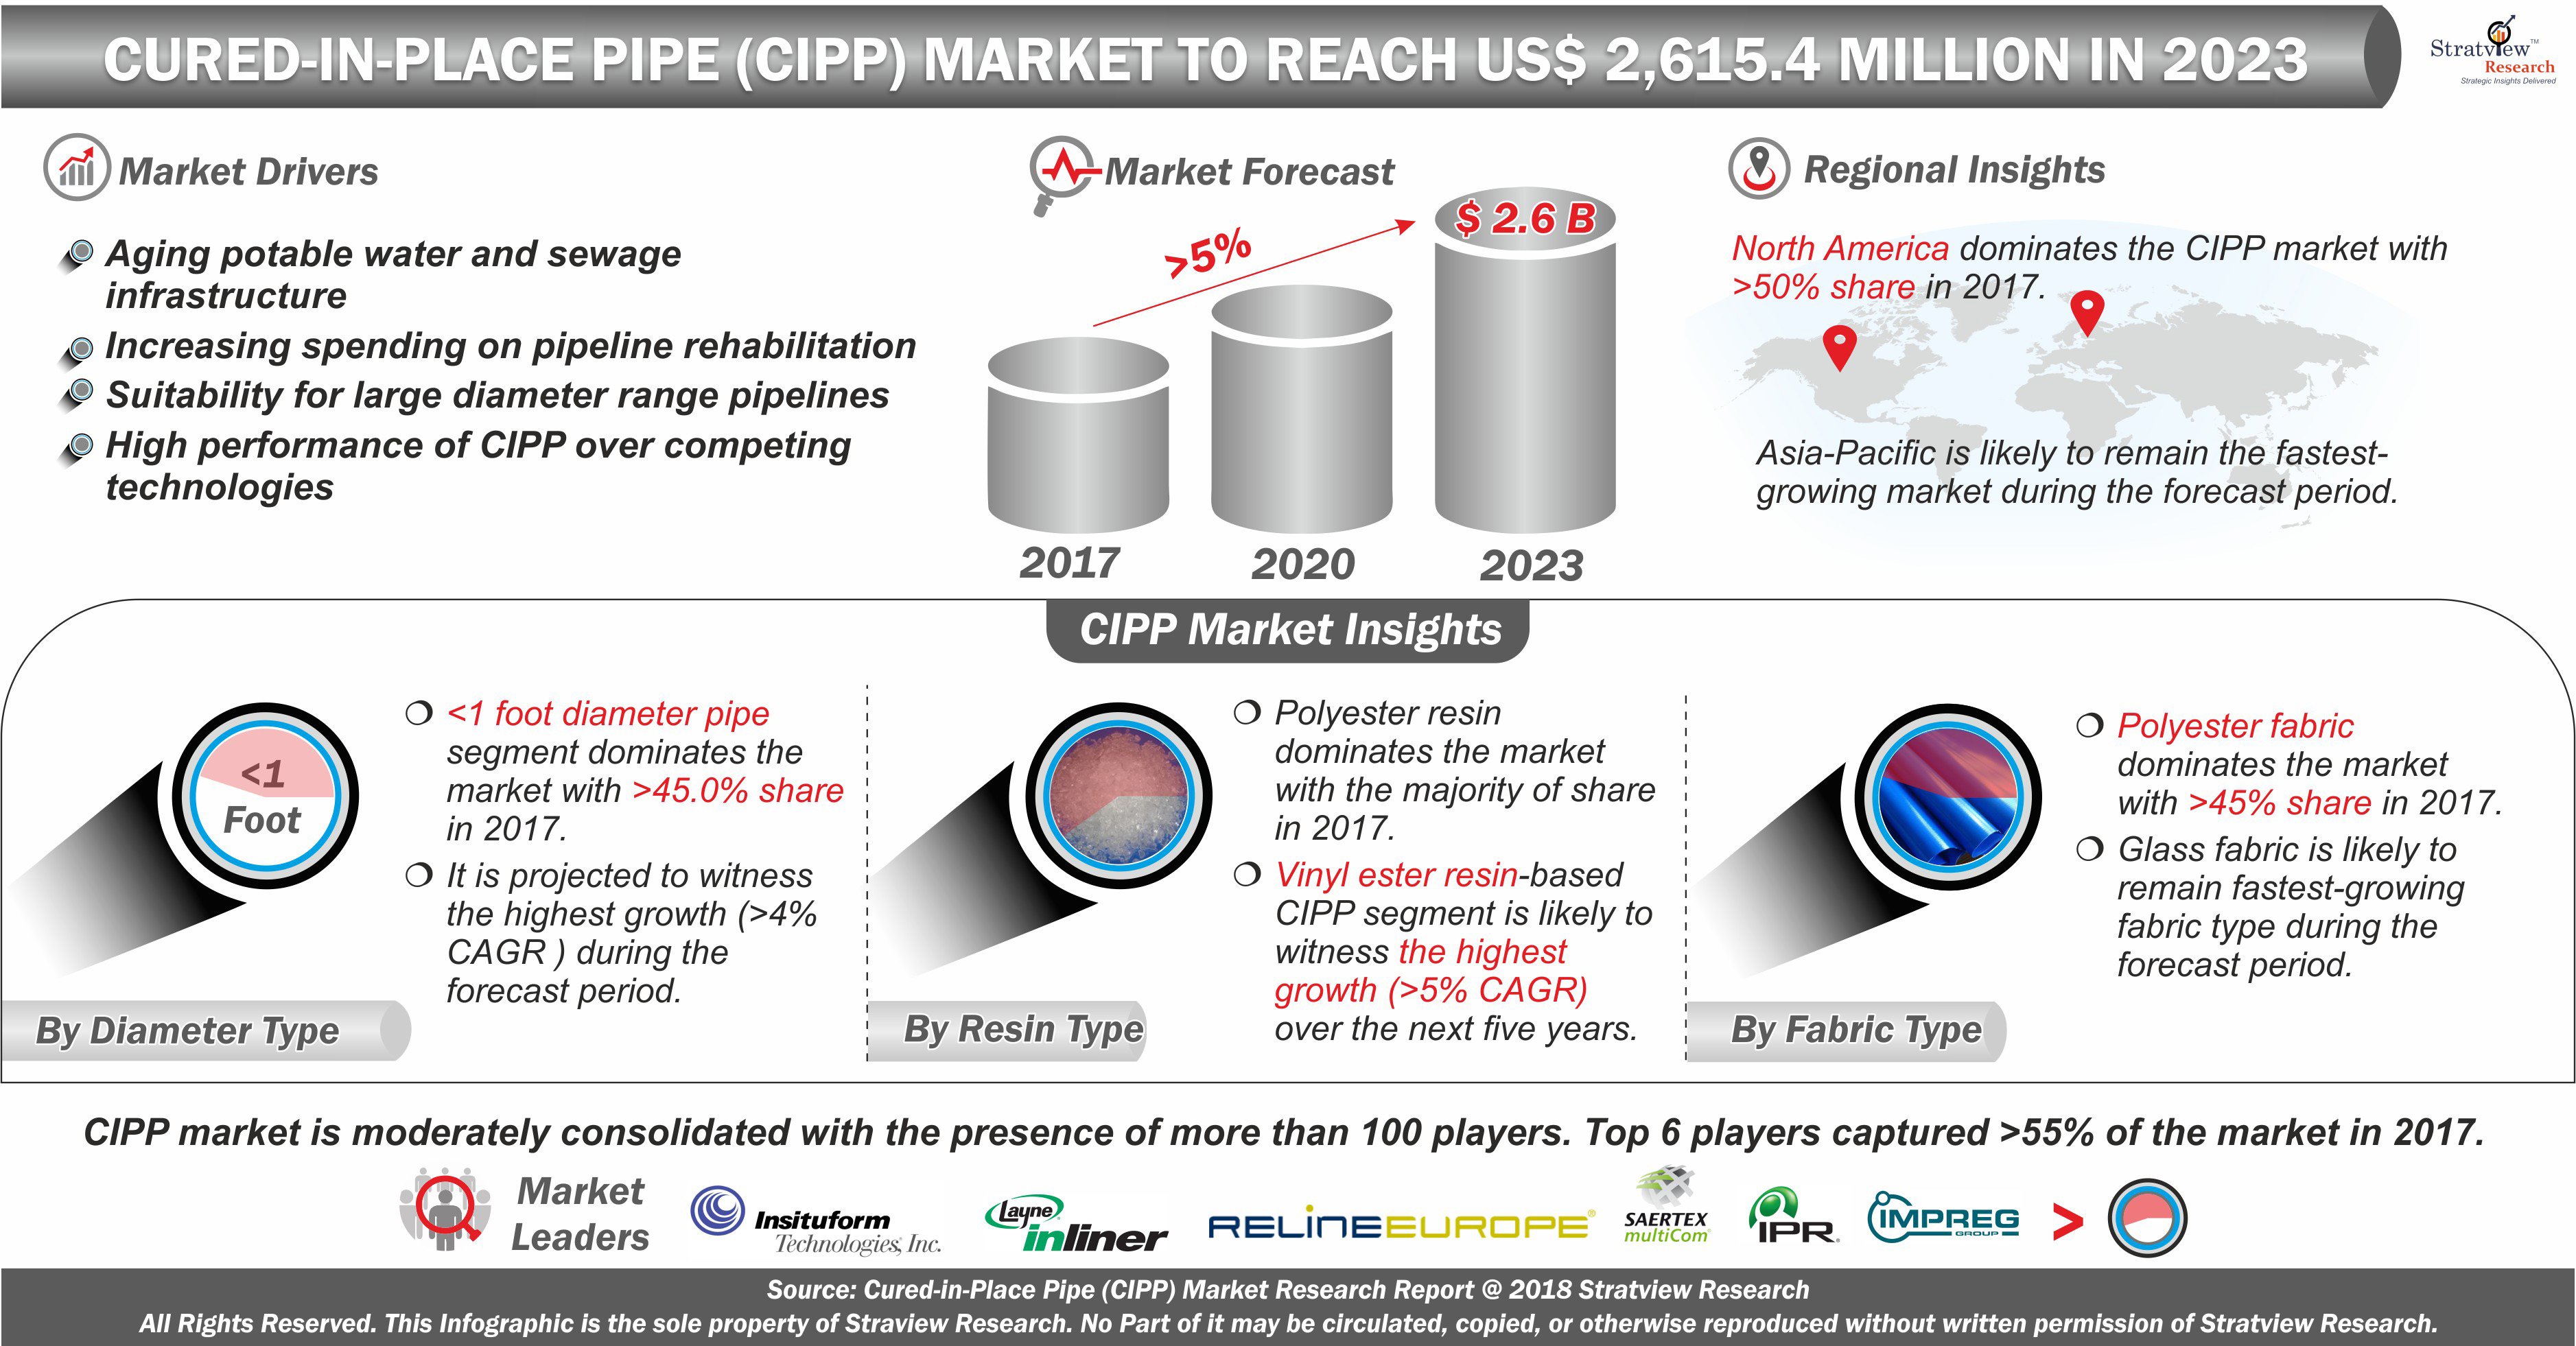 Cured-in-Place Pipe Market (CIPP)